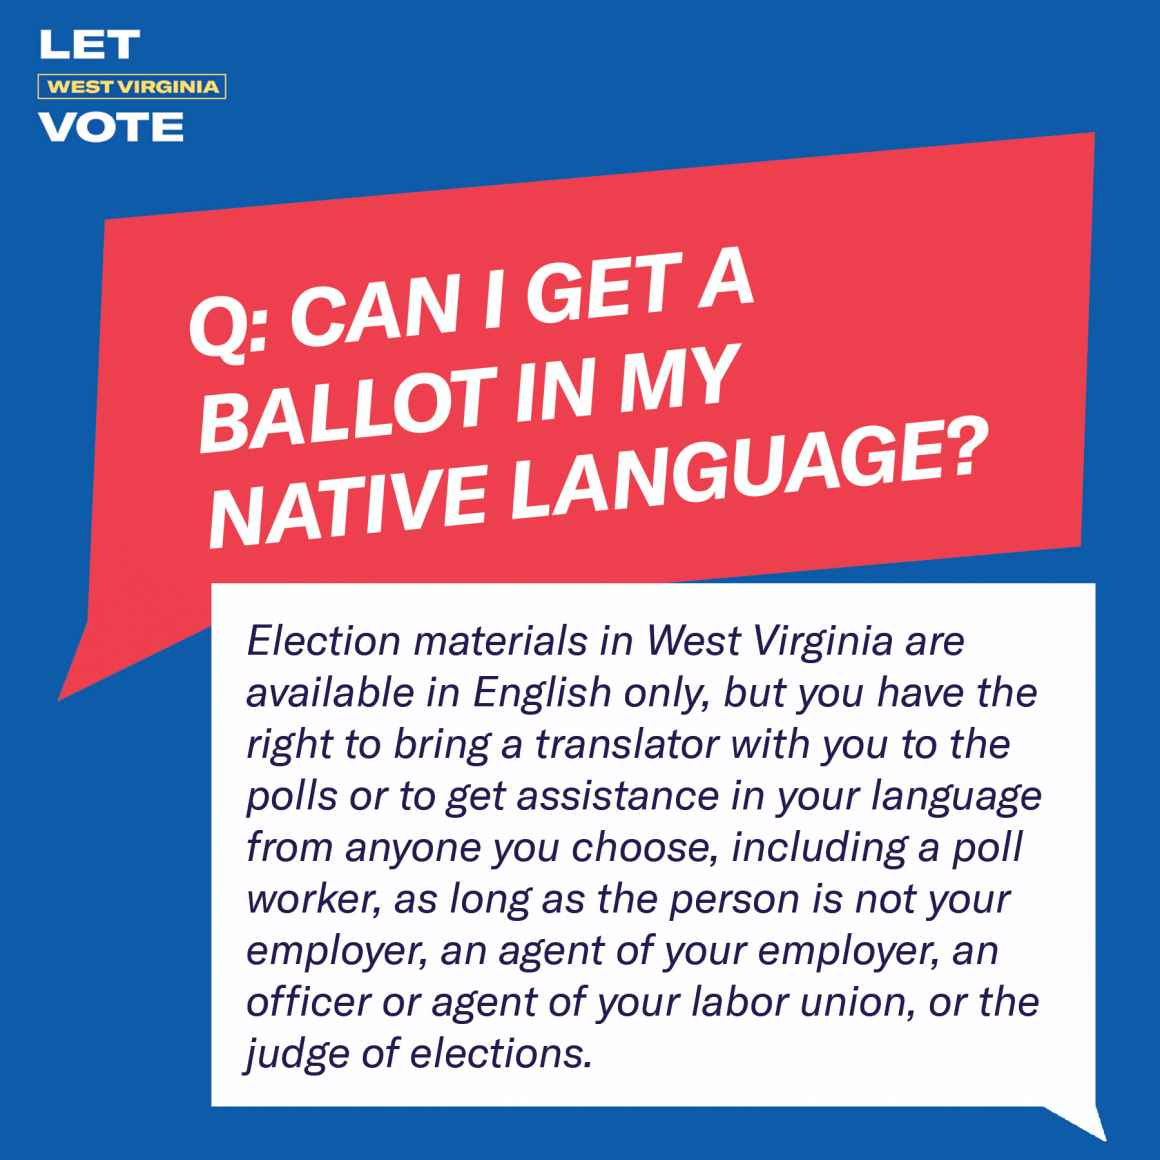 Can I get a ballot in my native language? Election materials in West Virginia are available in English only, but you have the right to bring a translator with you to the polls or to get assistance in your language from anyone you choose, including a poll